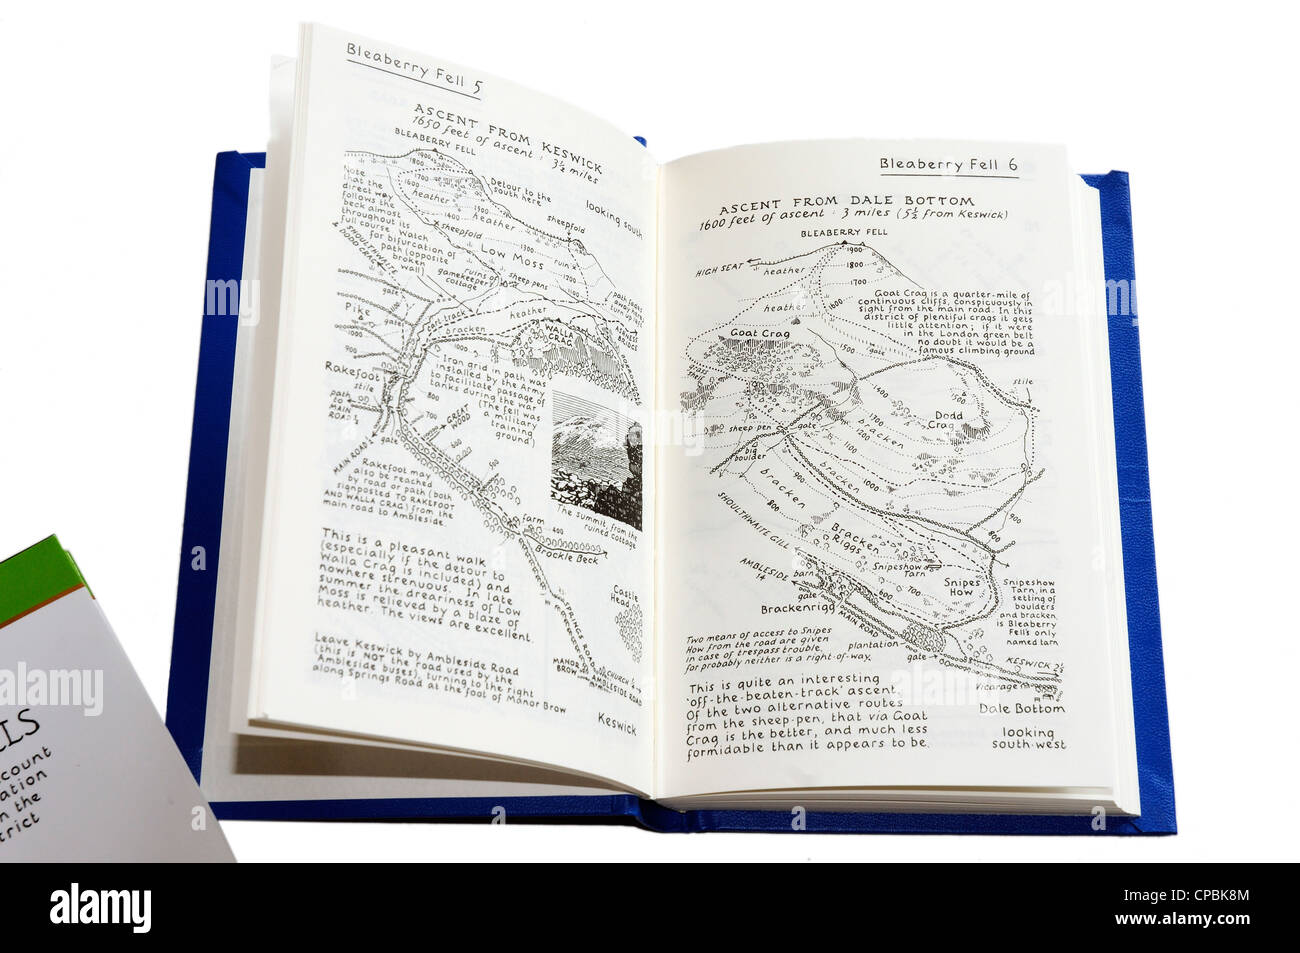 Alfred Wainwrights famous Pictorial Guide to the Lakeland Fells - Stock Image